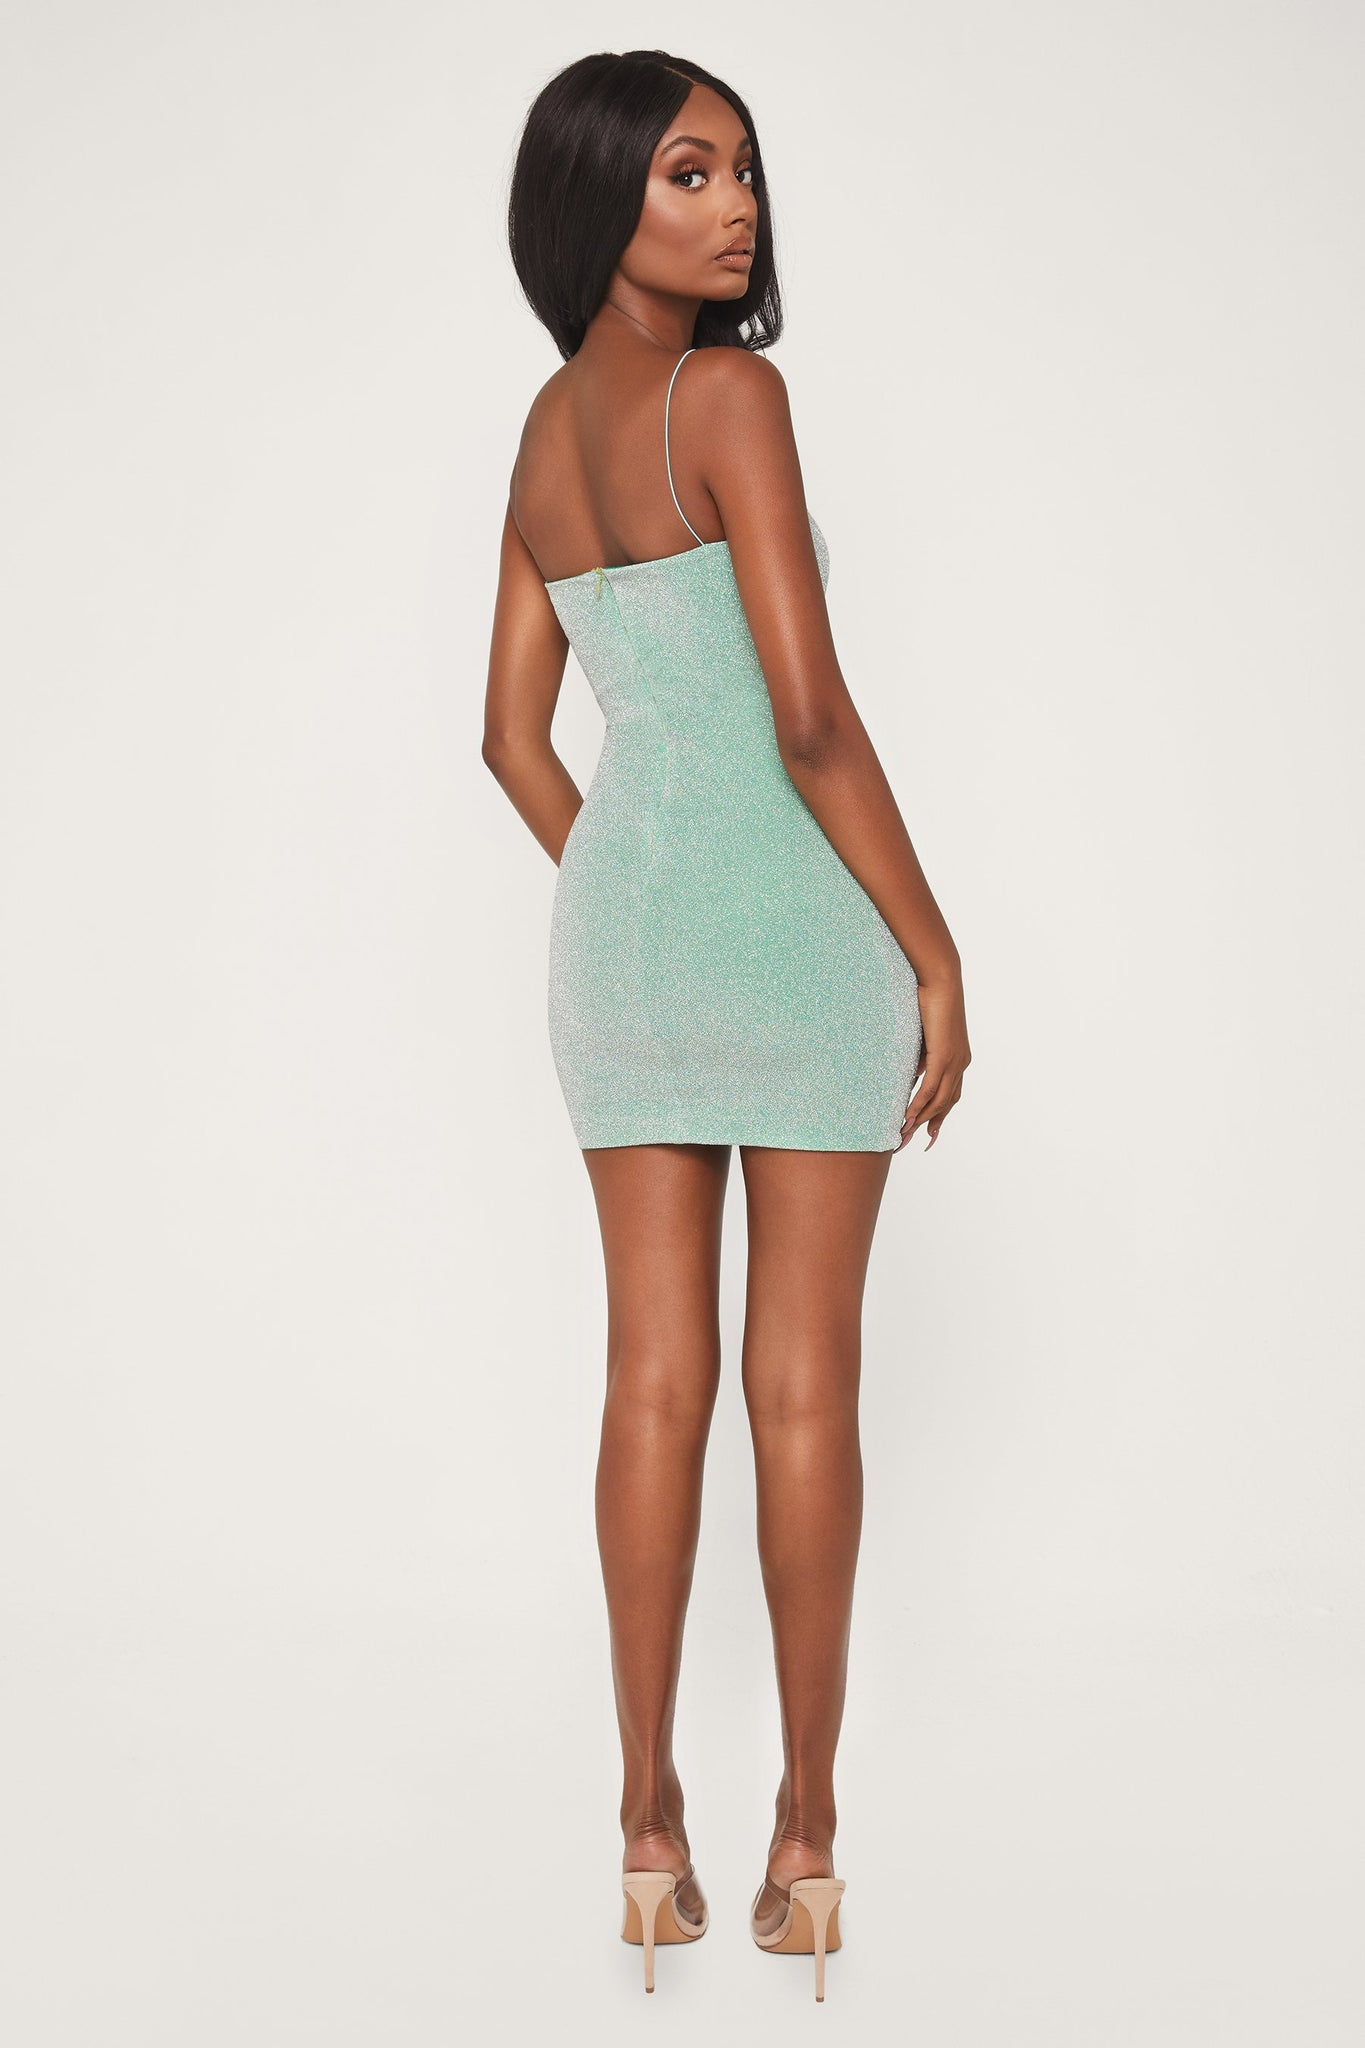 Mia Thin Strap Shimmer Dress - Mint - MESHKI